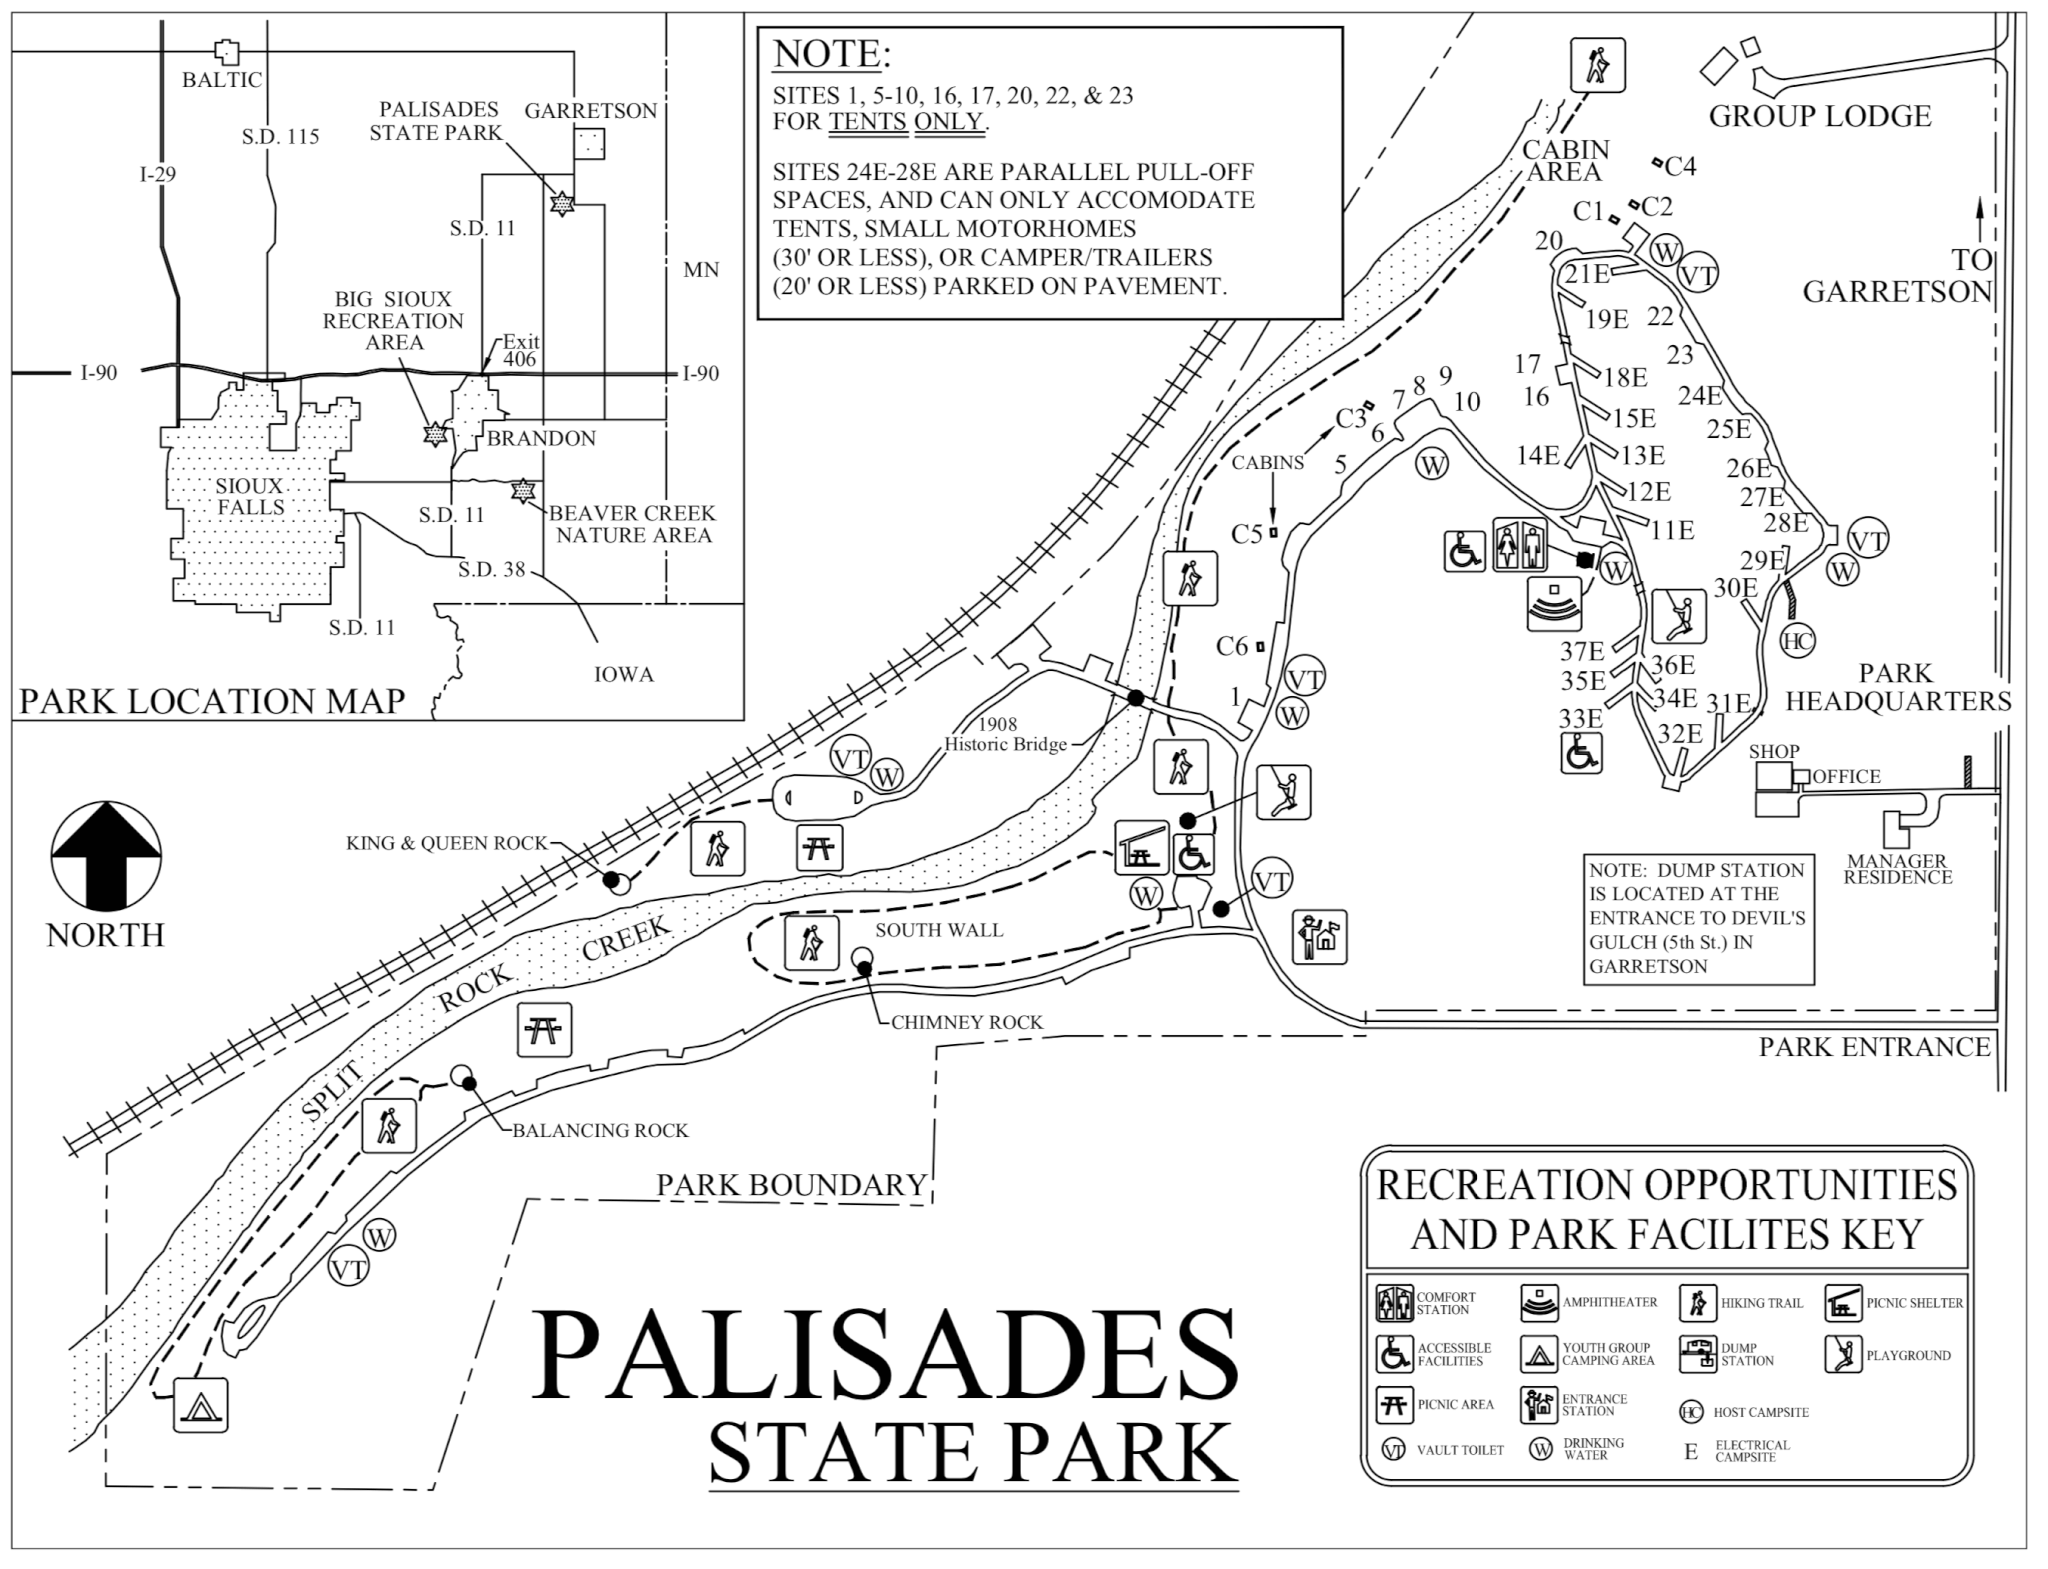 mississippi palisades state park map Palisades State Park Campsite Photos Reservations Camping Info mississippi palisades state park map